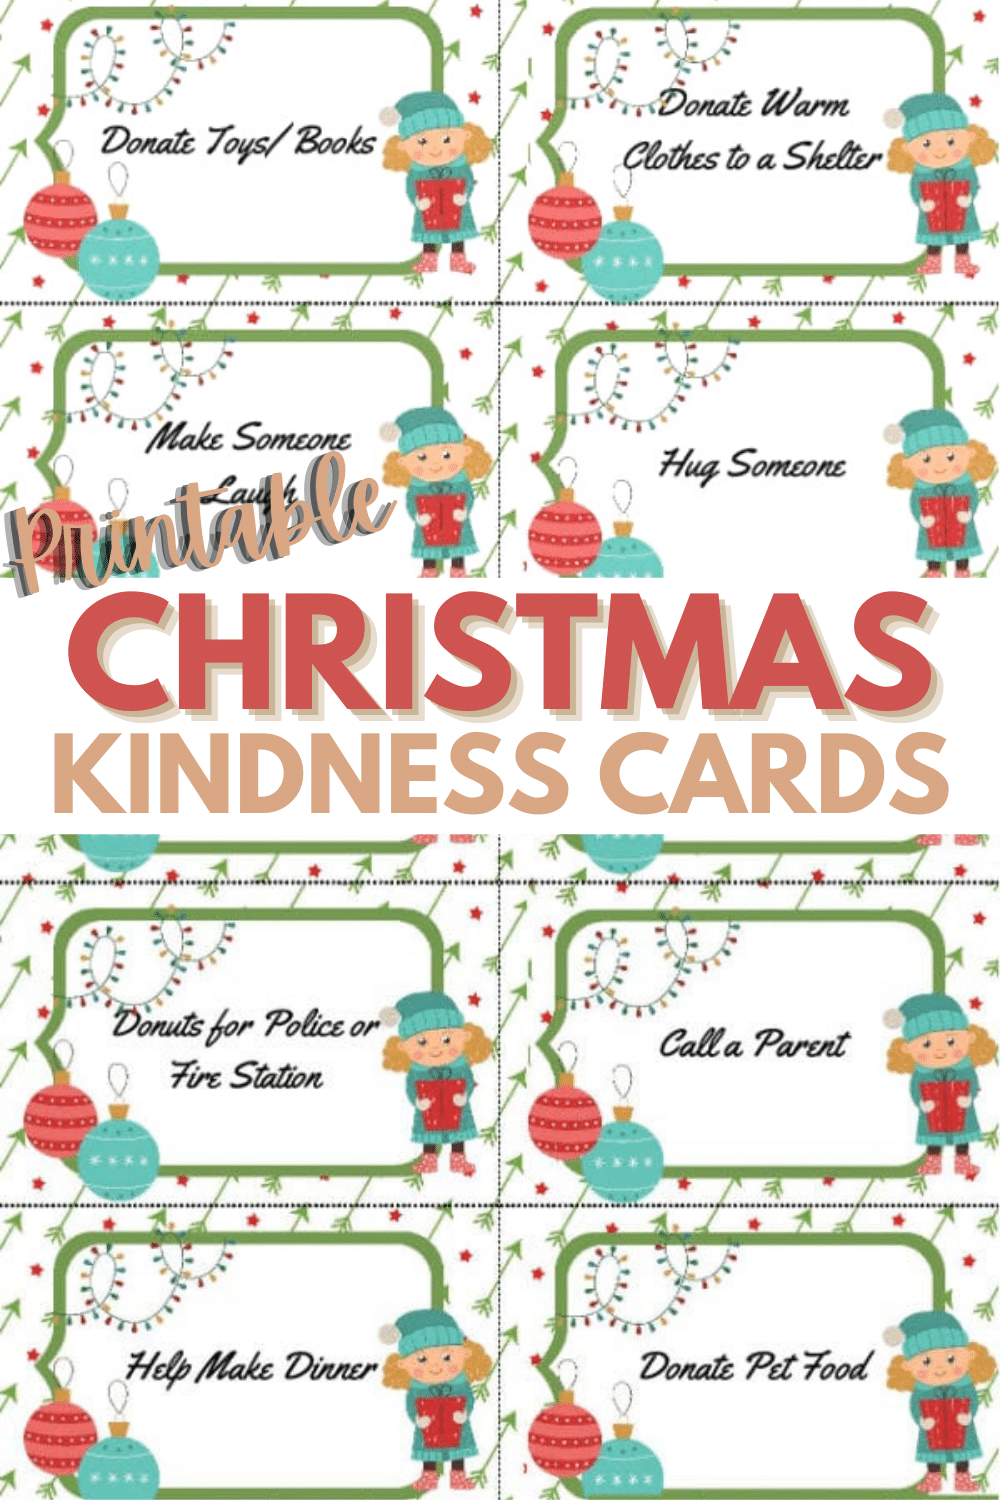 This set of printable Christmas kindness cards has four pages of acts of kindness that are perfect for your family to do this holiday season. #printables #randomactsofkindness #Christmas via @wondermomwannab